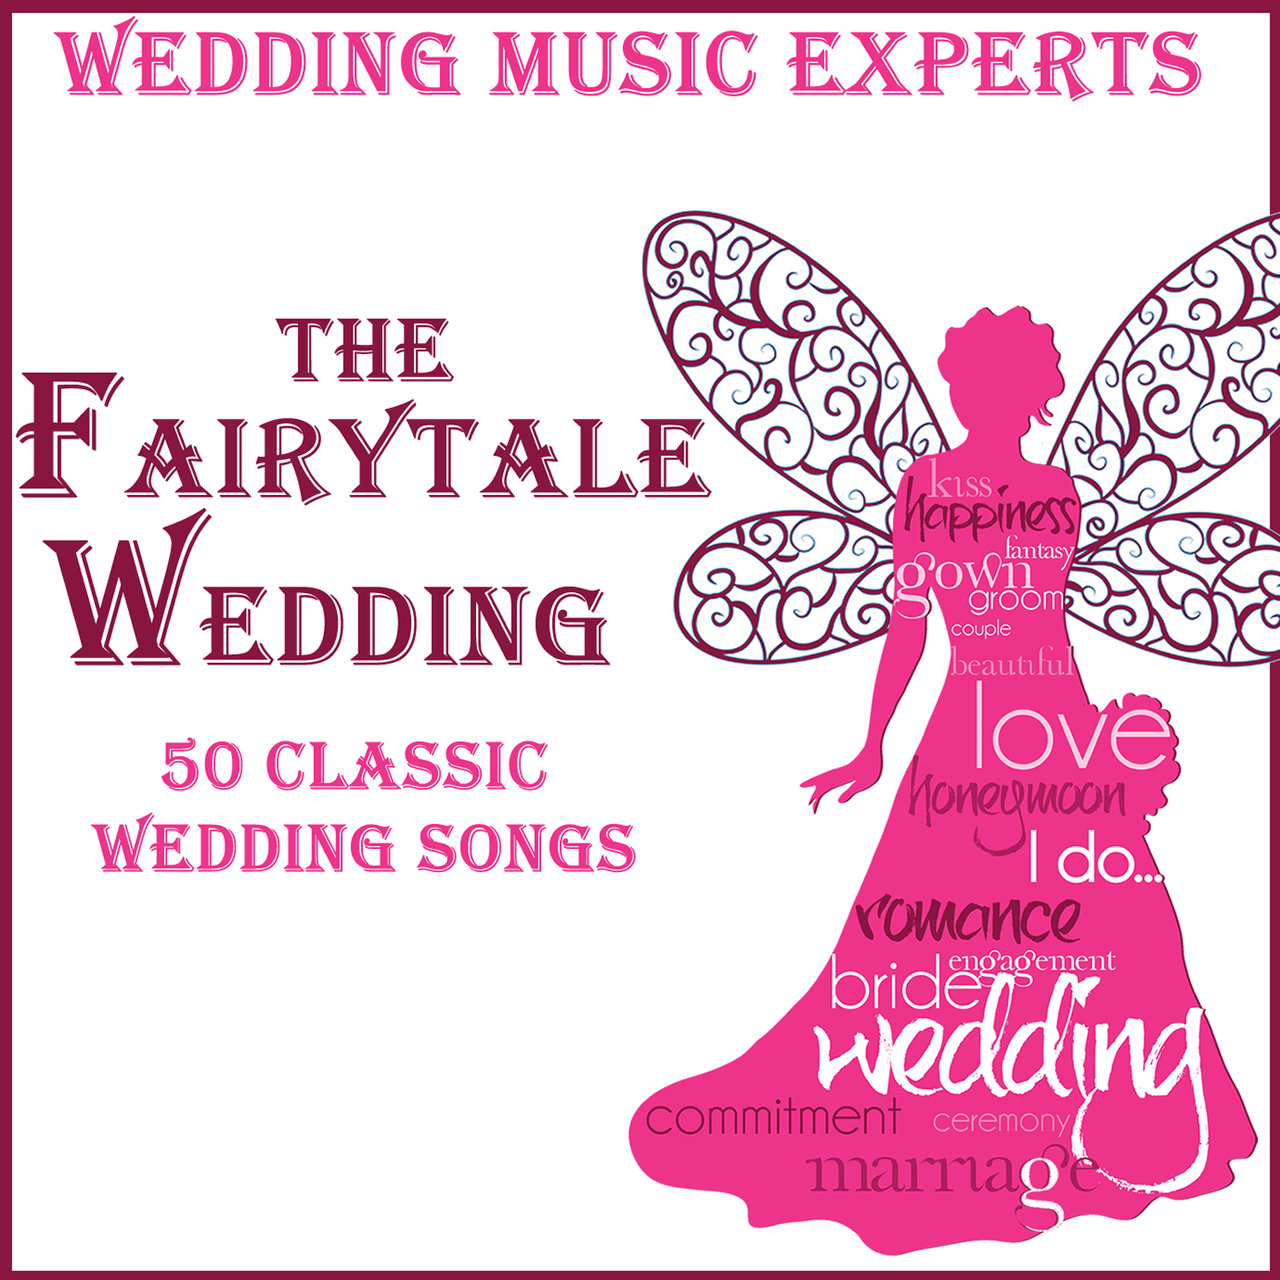 TIDAL: Listen to Classical Wedding Music Experts on TIDAL